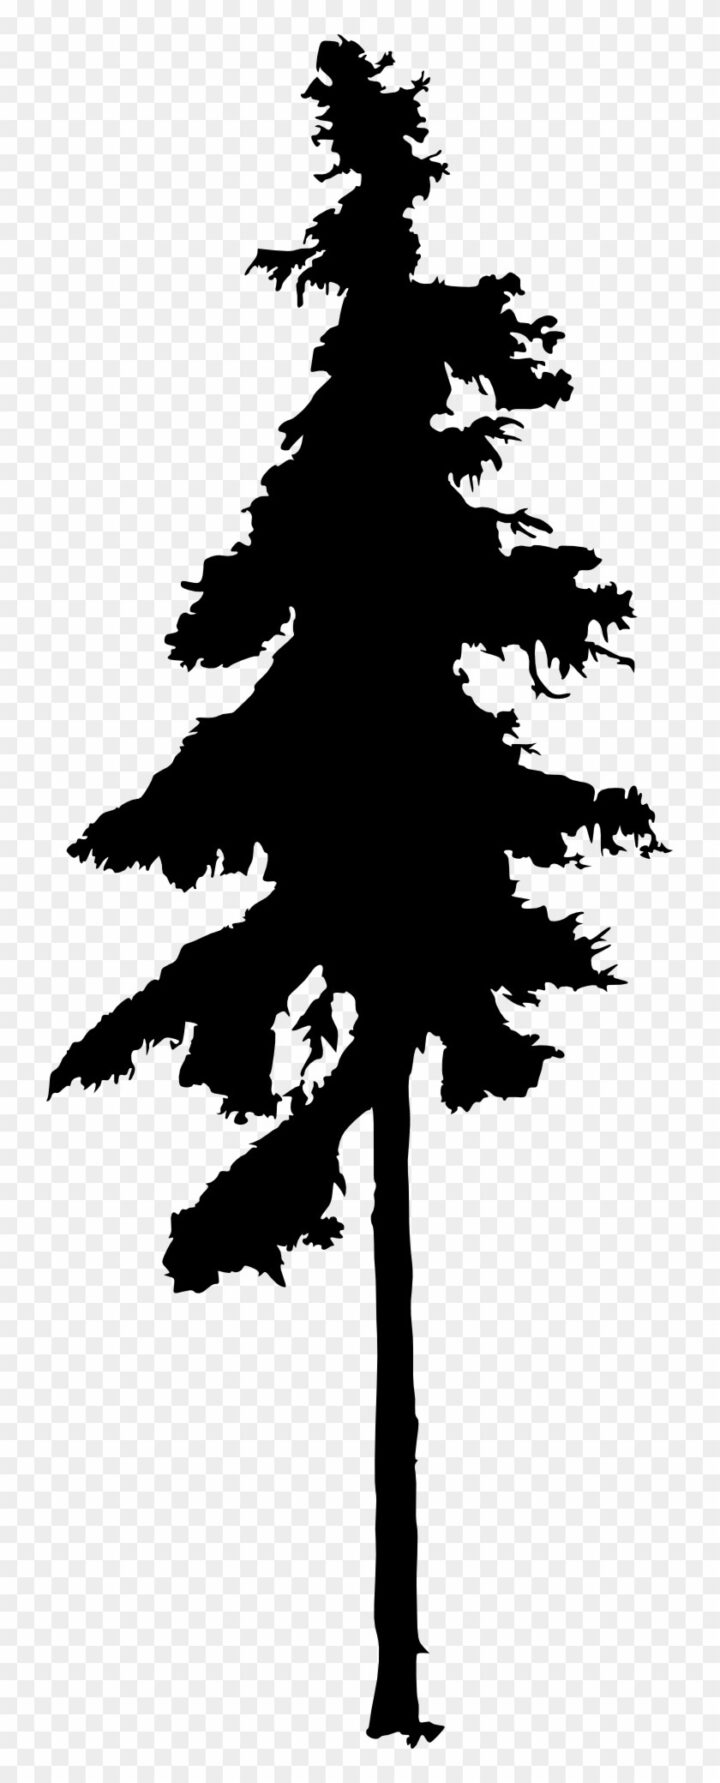 pencil drawings of pine trees free pine tree clip art pictures clipartix drawings pine pencil of trees